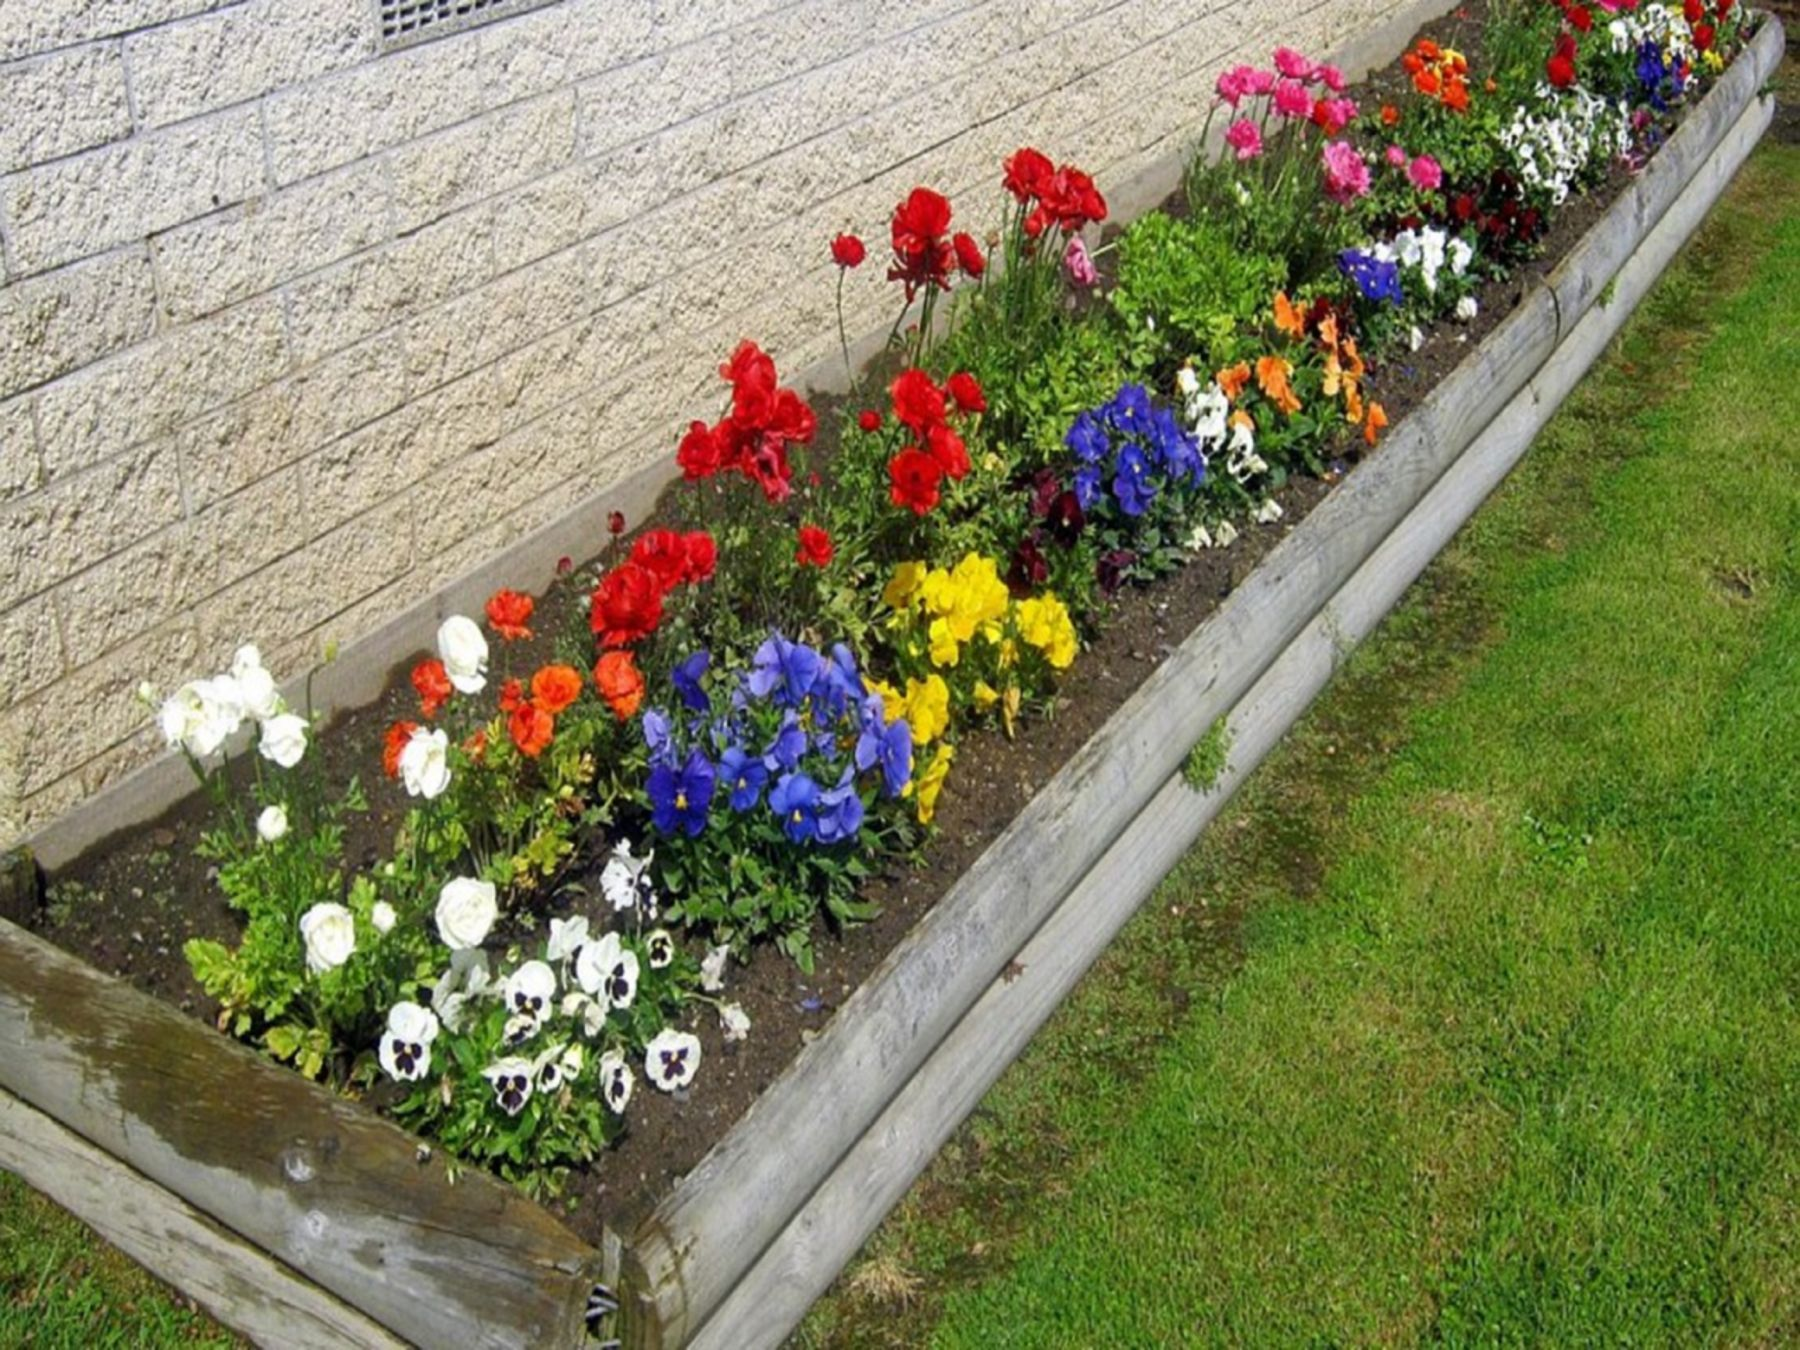 20 Beautiful Flower Bed Garden Design Ideas For Your Home Yard